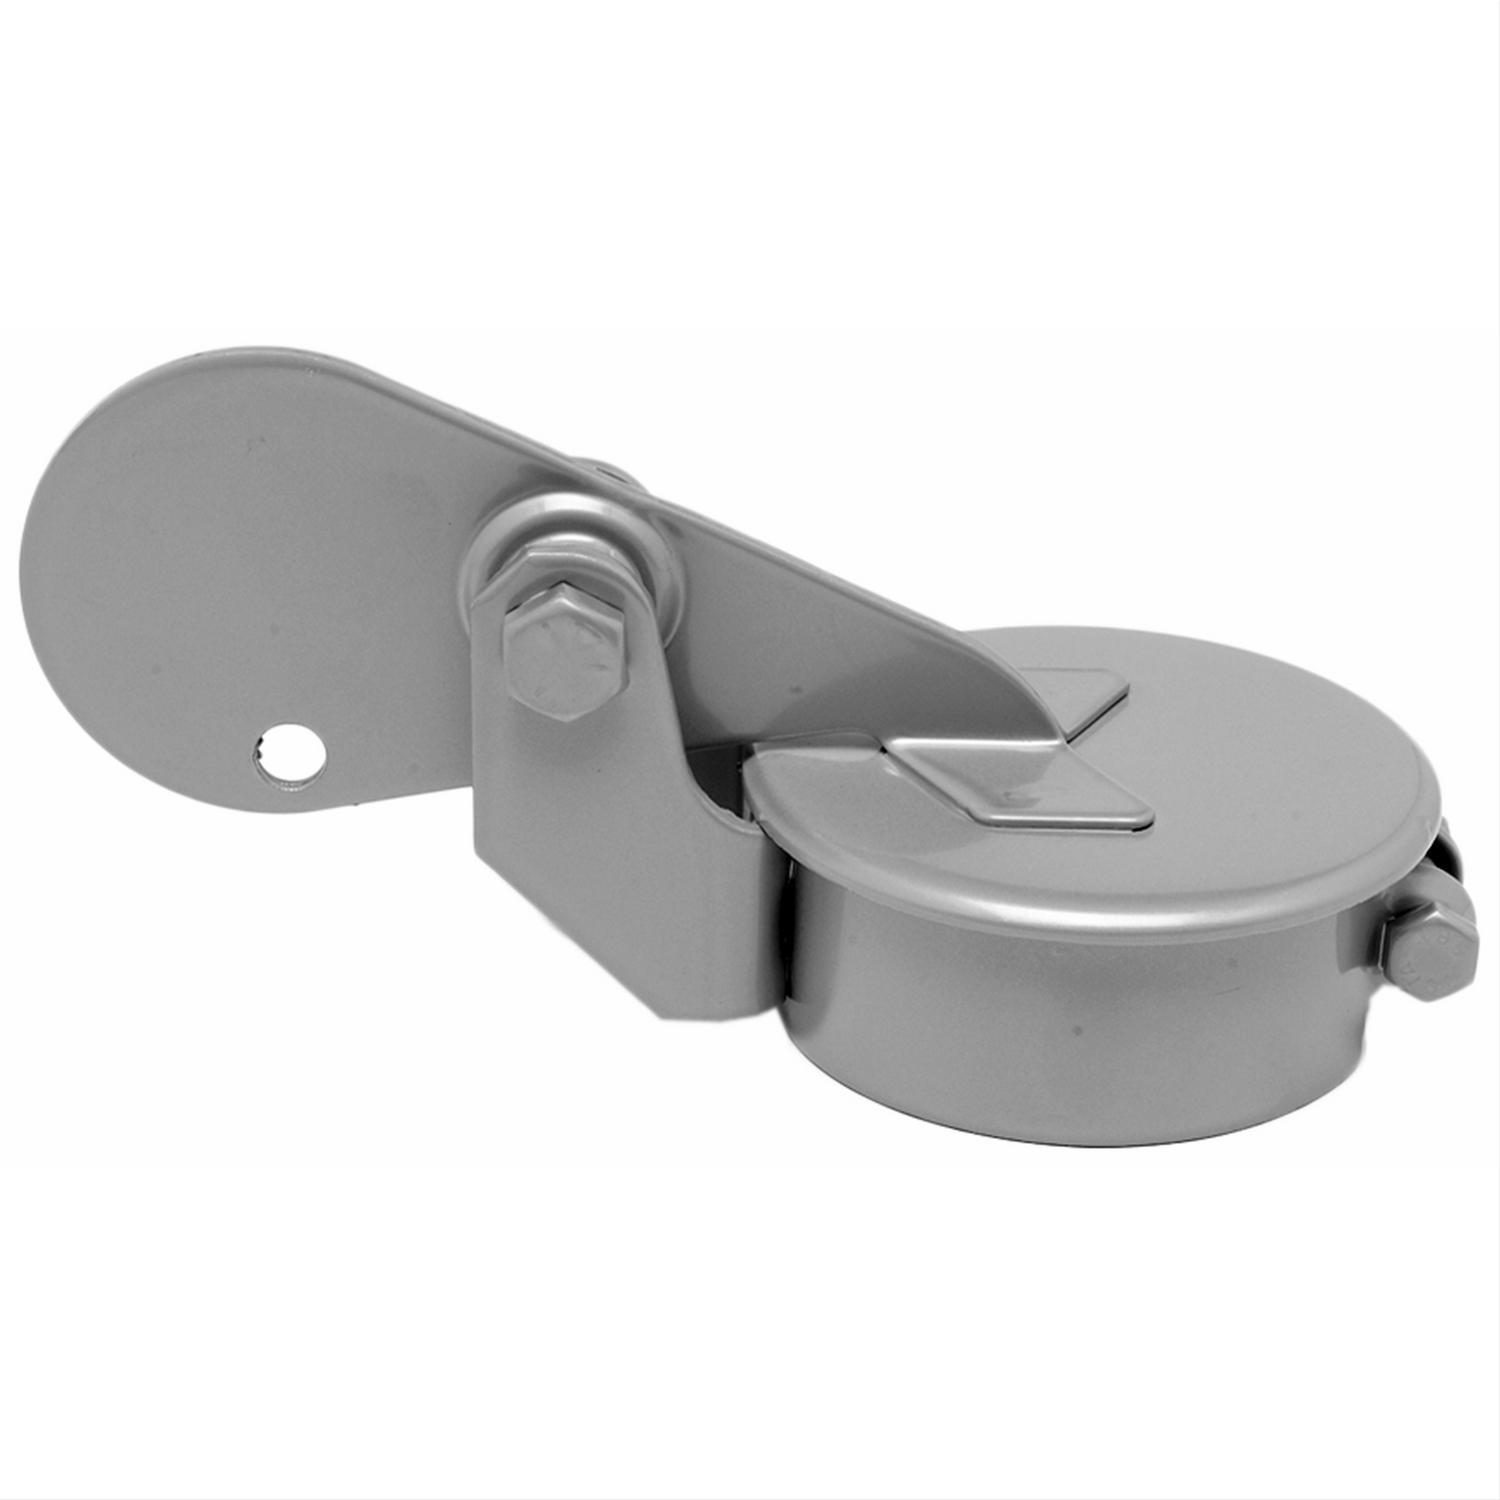 Exhaust Pipe Caps : Walker exhaust pipe rain caps free shipping on